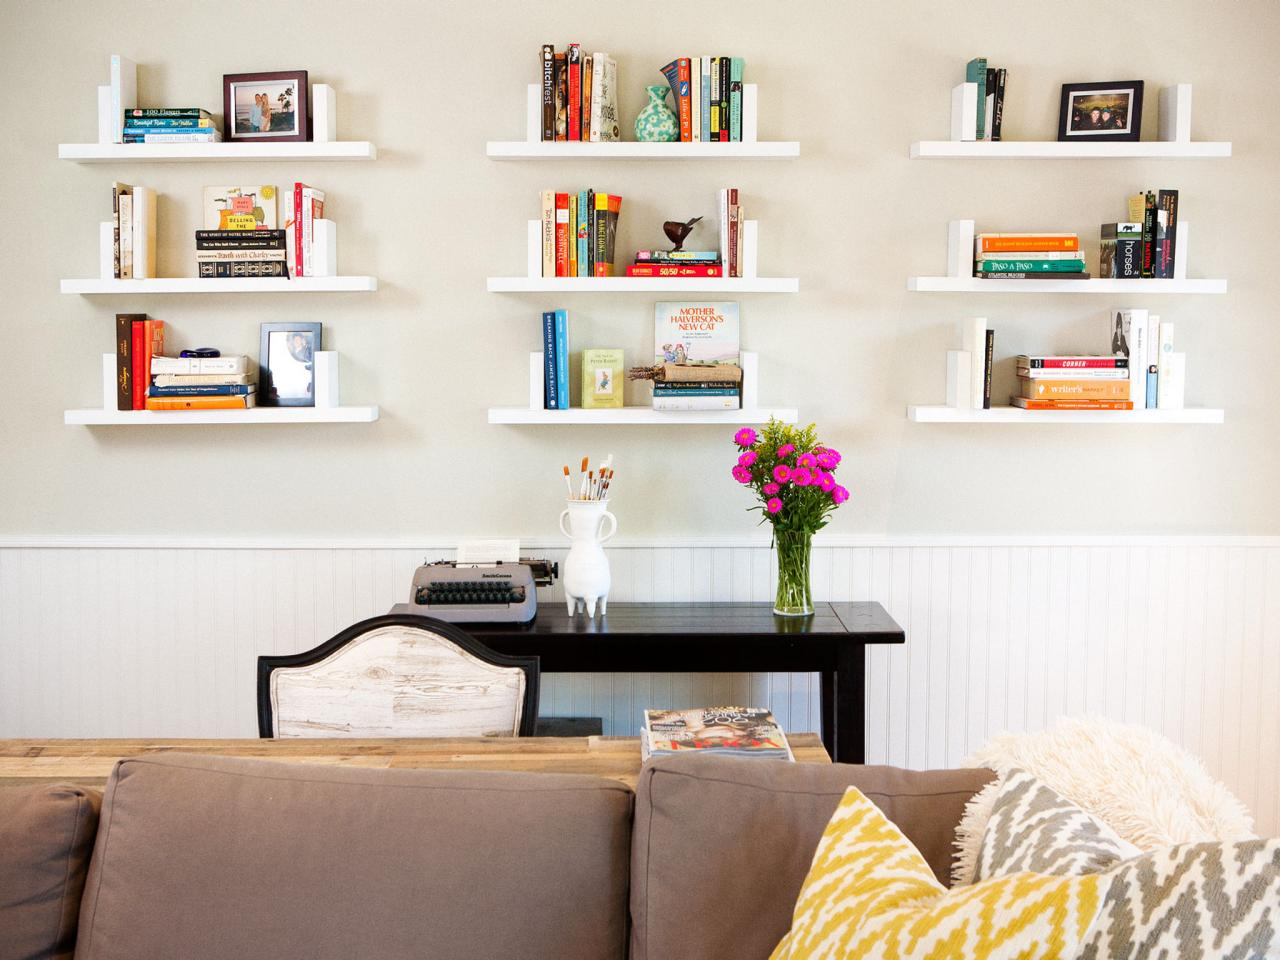 ways decorate with floating shelves decorating shelf configurations living room nine white wall shoe organiser above the desk modern open shelving kitchen ideas media systems bath